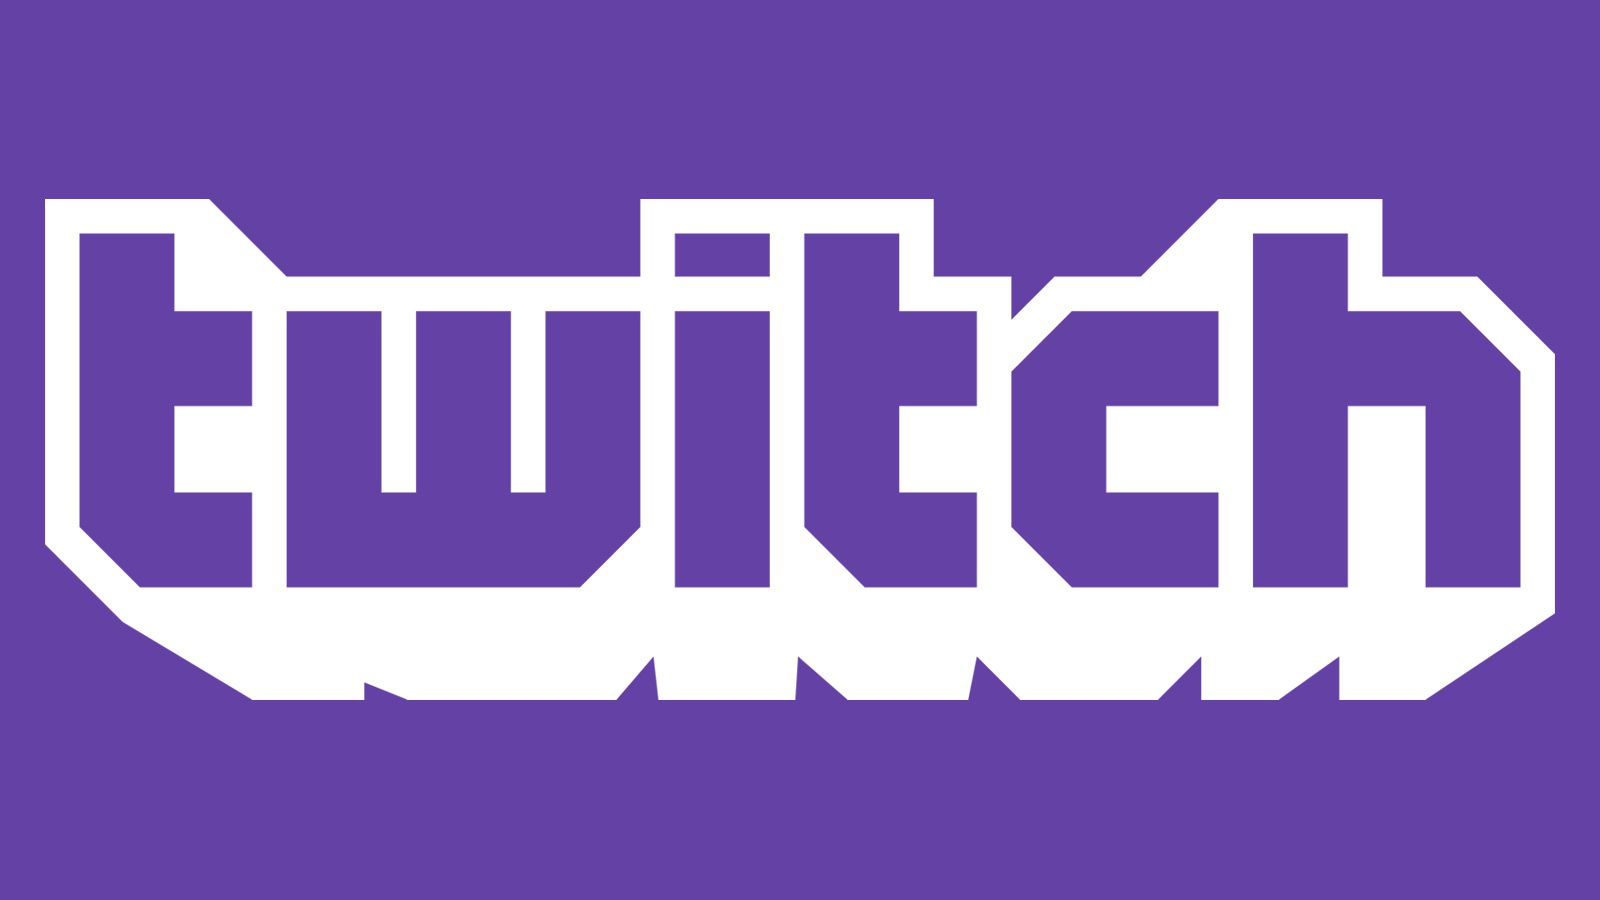 twitch_logo_purple.0.jpg